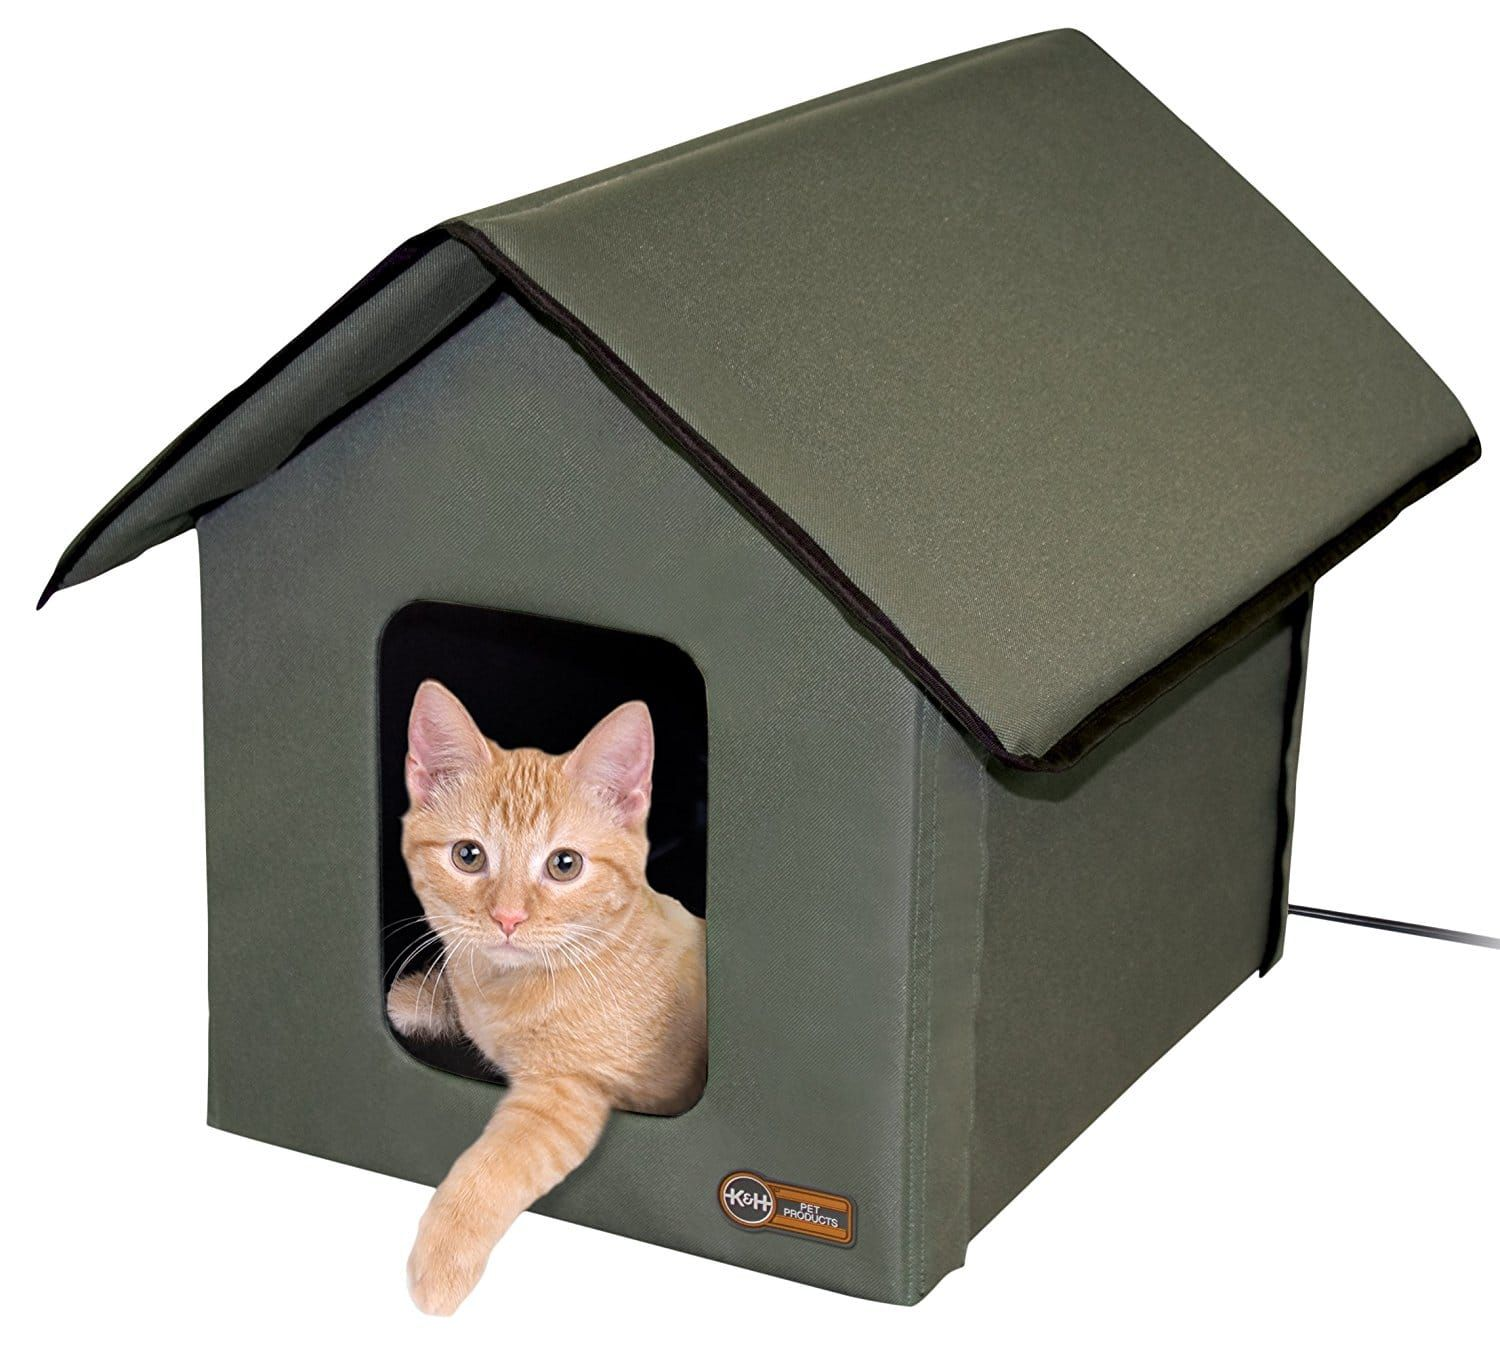 Top 10 Best Outdoor Cat Houses In 2020 Reviews Heated Outdoor Cat House Outdoor Cat House Outdoor Cat Shelter